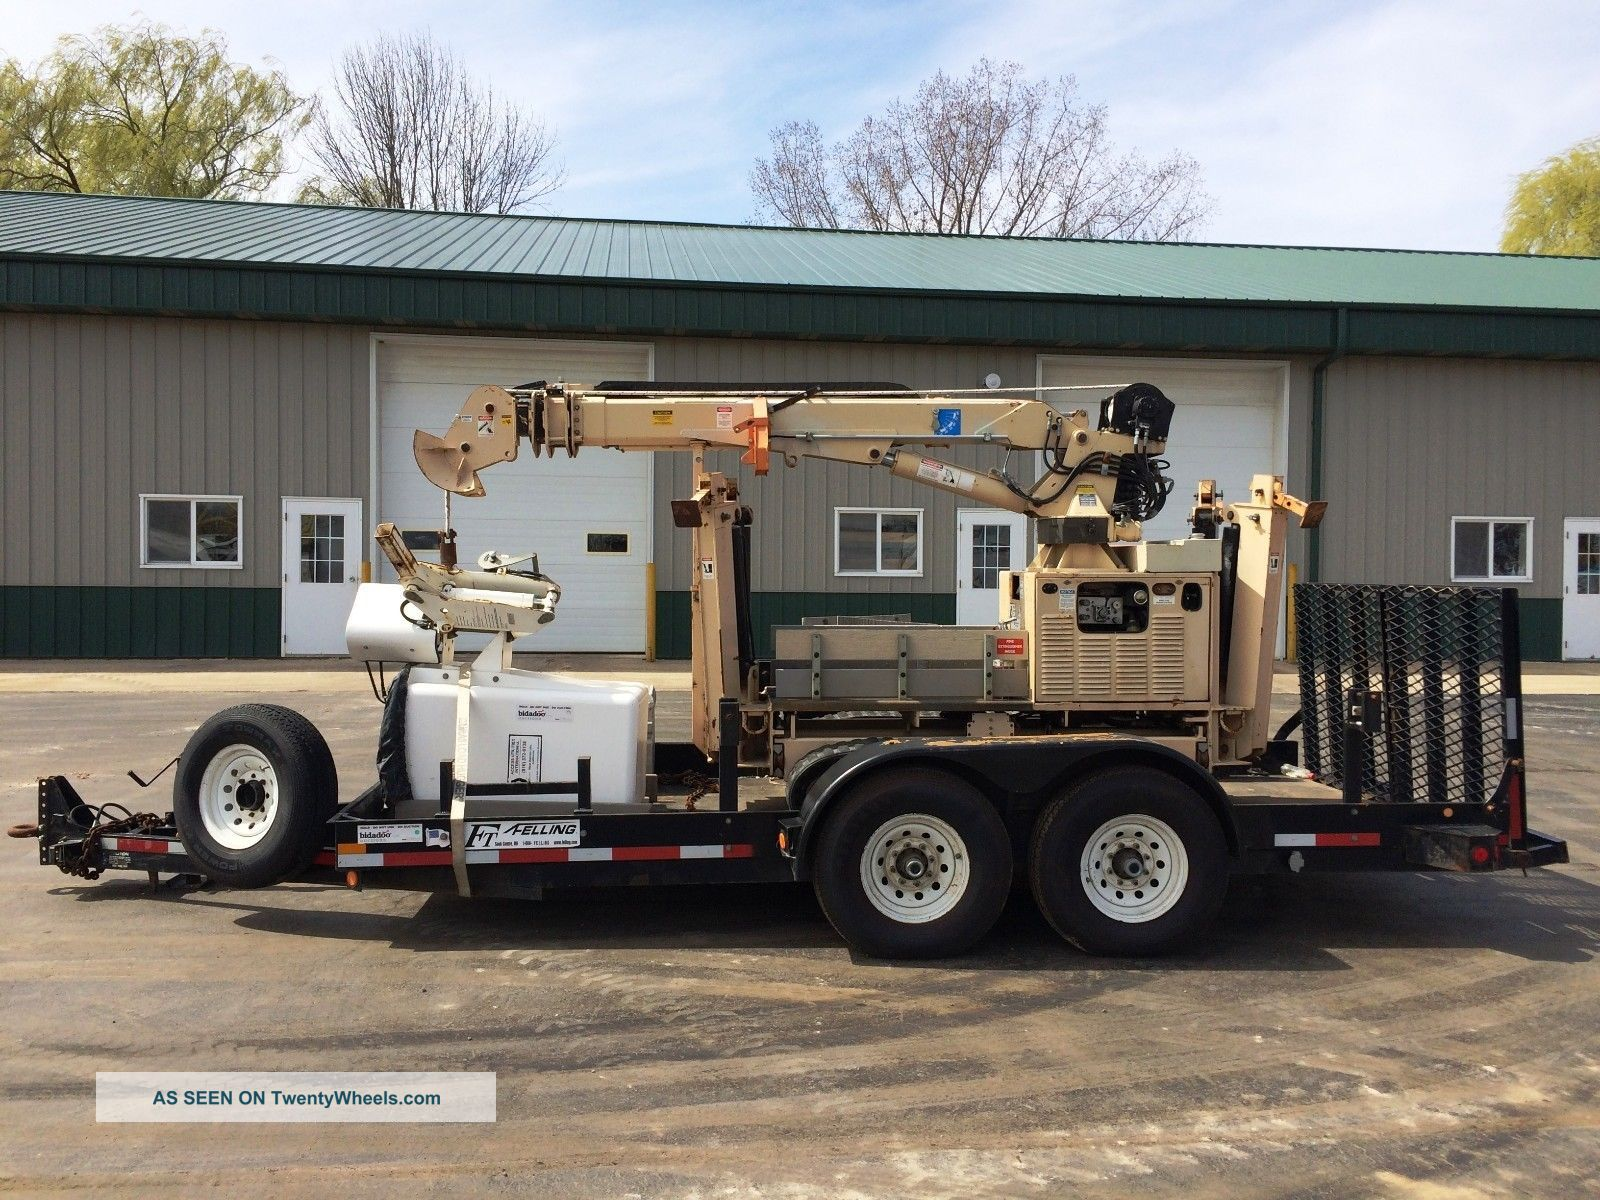 2004 Tiiger - I Mini Digger Derrick Trencher With Trailer & Aerial Bucket Manlift Cranes photo